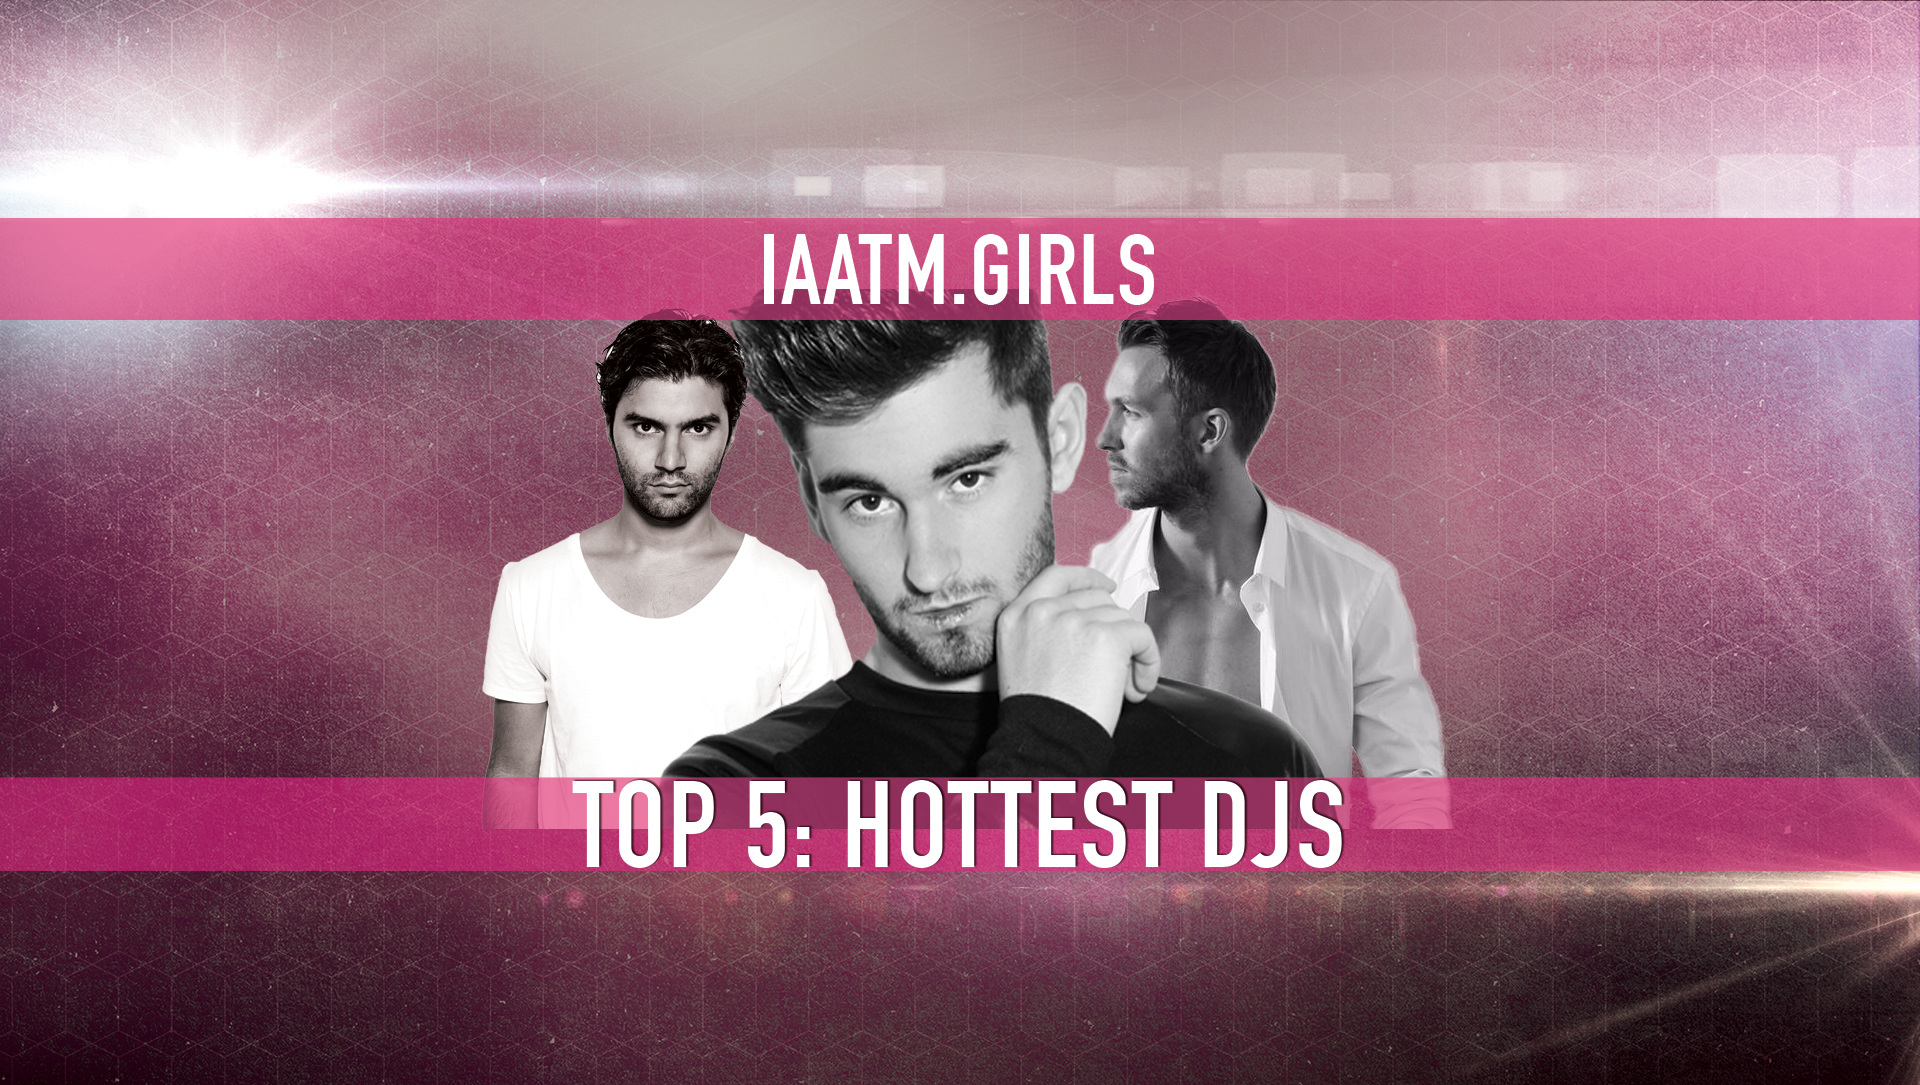 IAATM Girls – Top 5 Hottest DJs